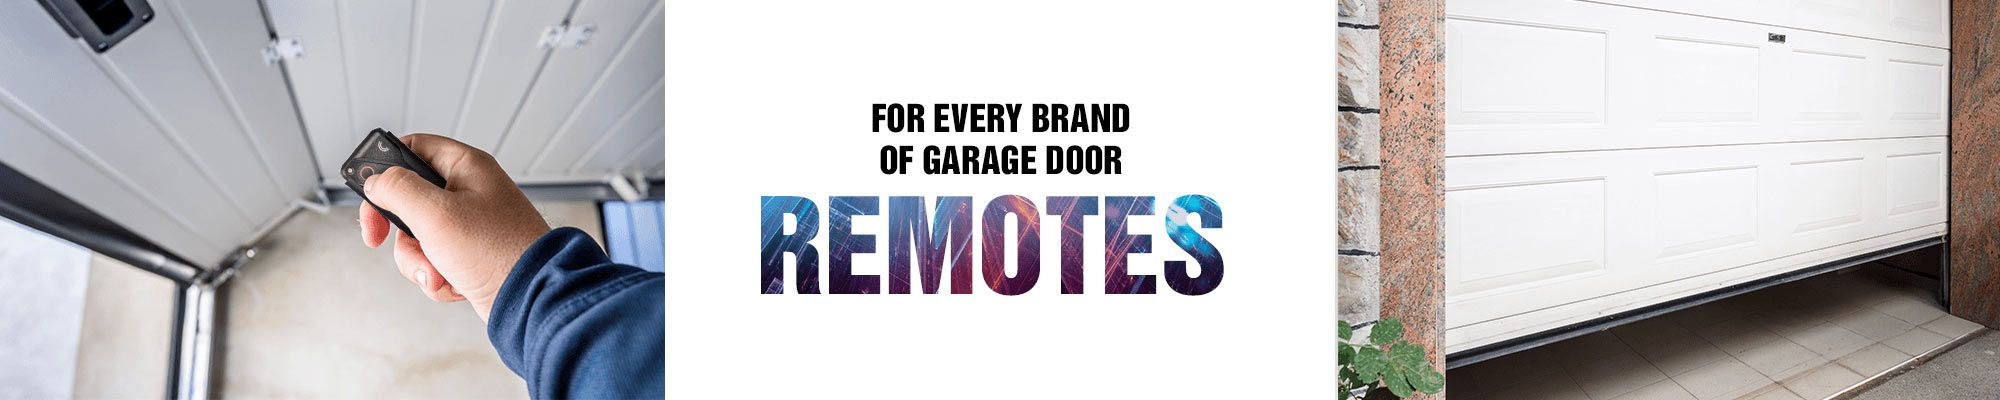 Shop Garage Door Remotes